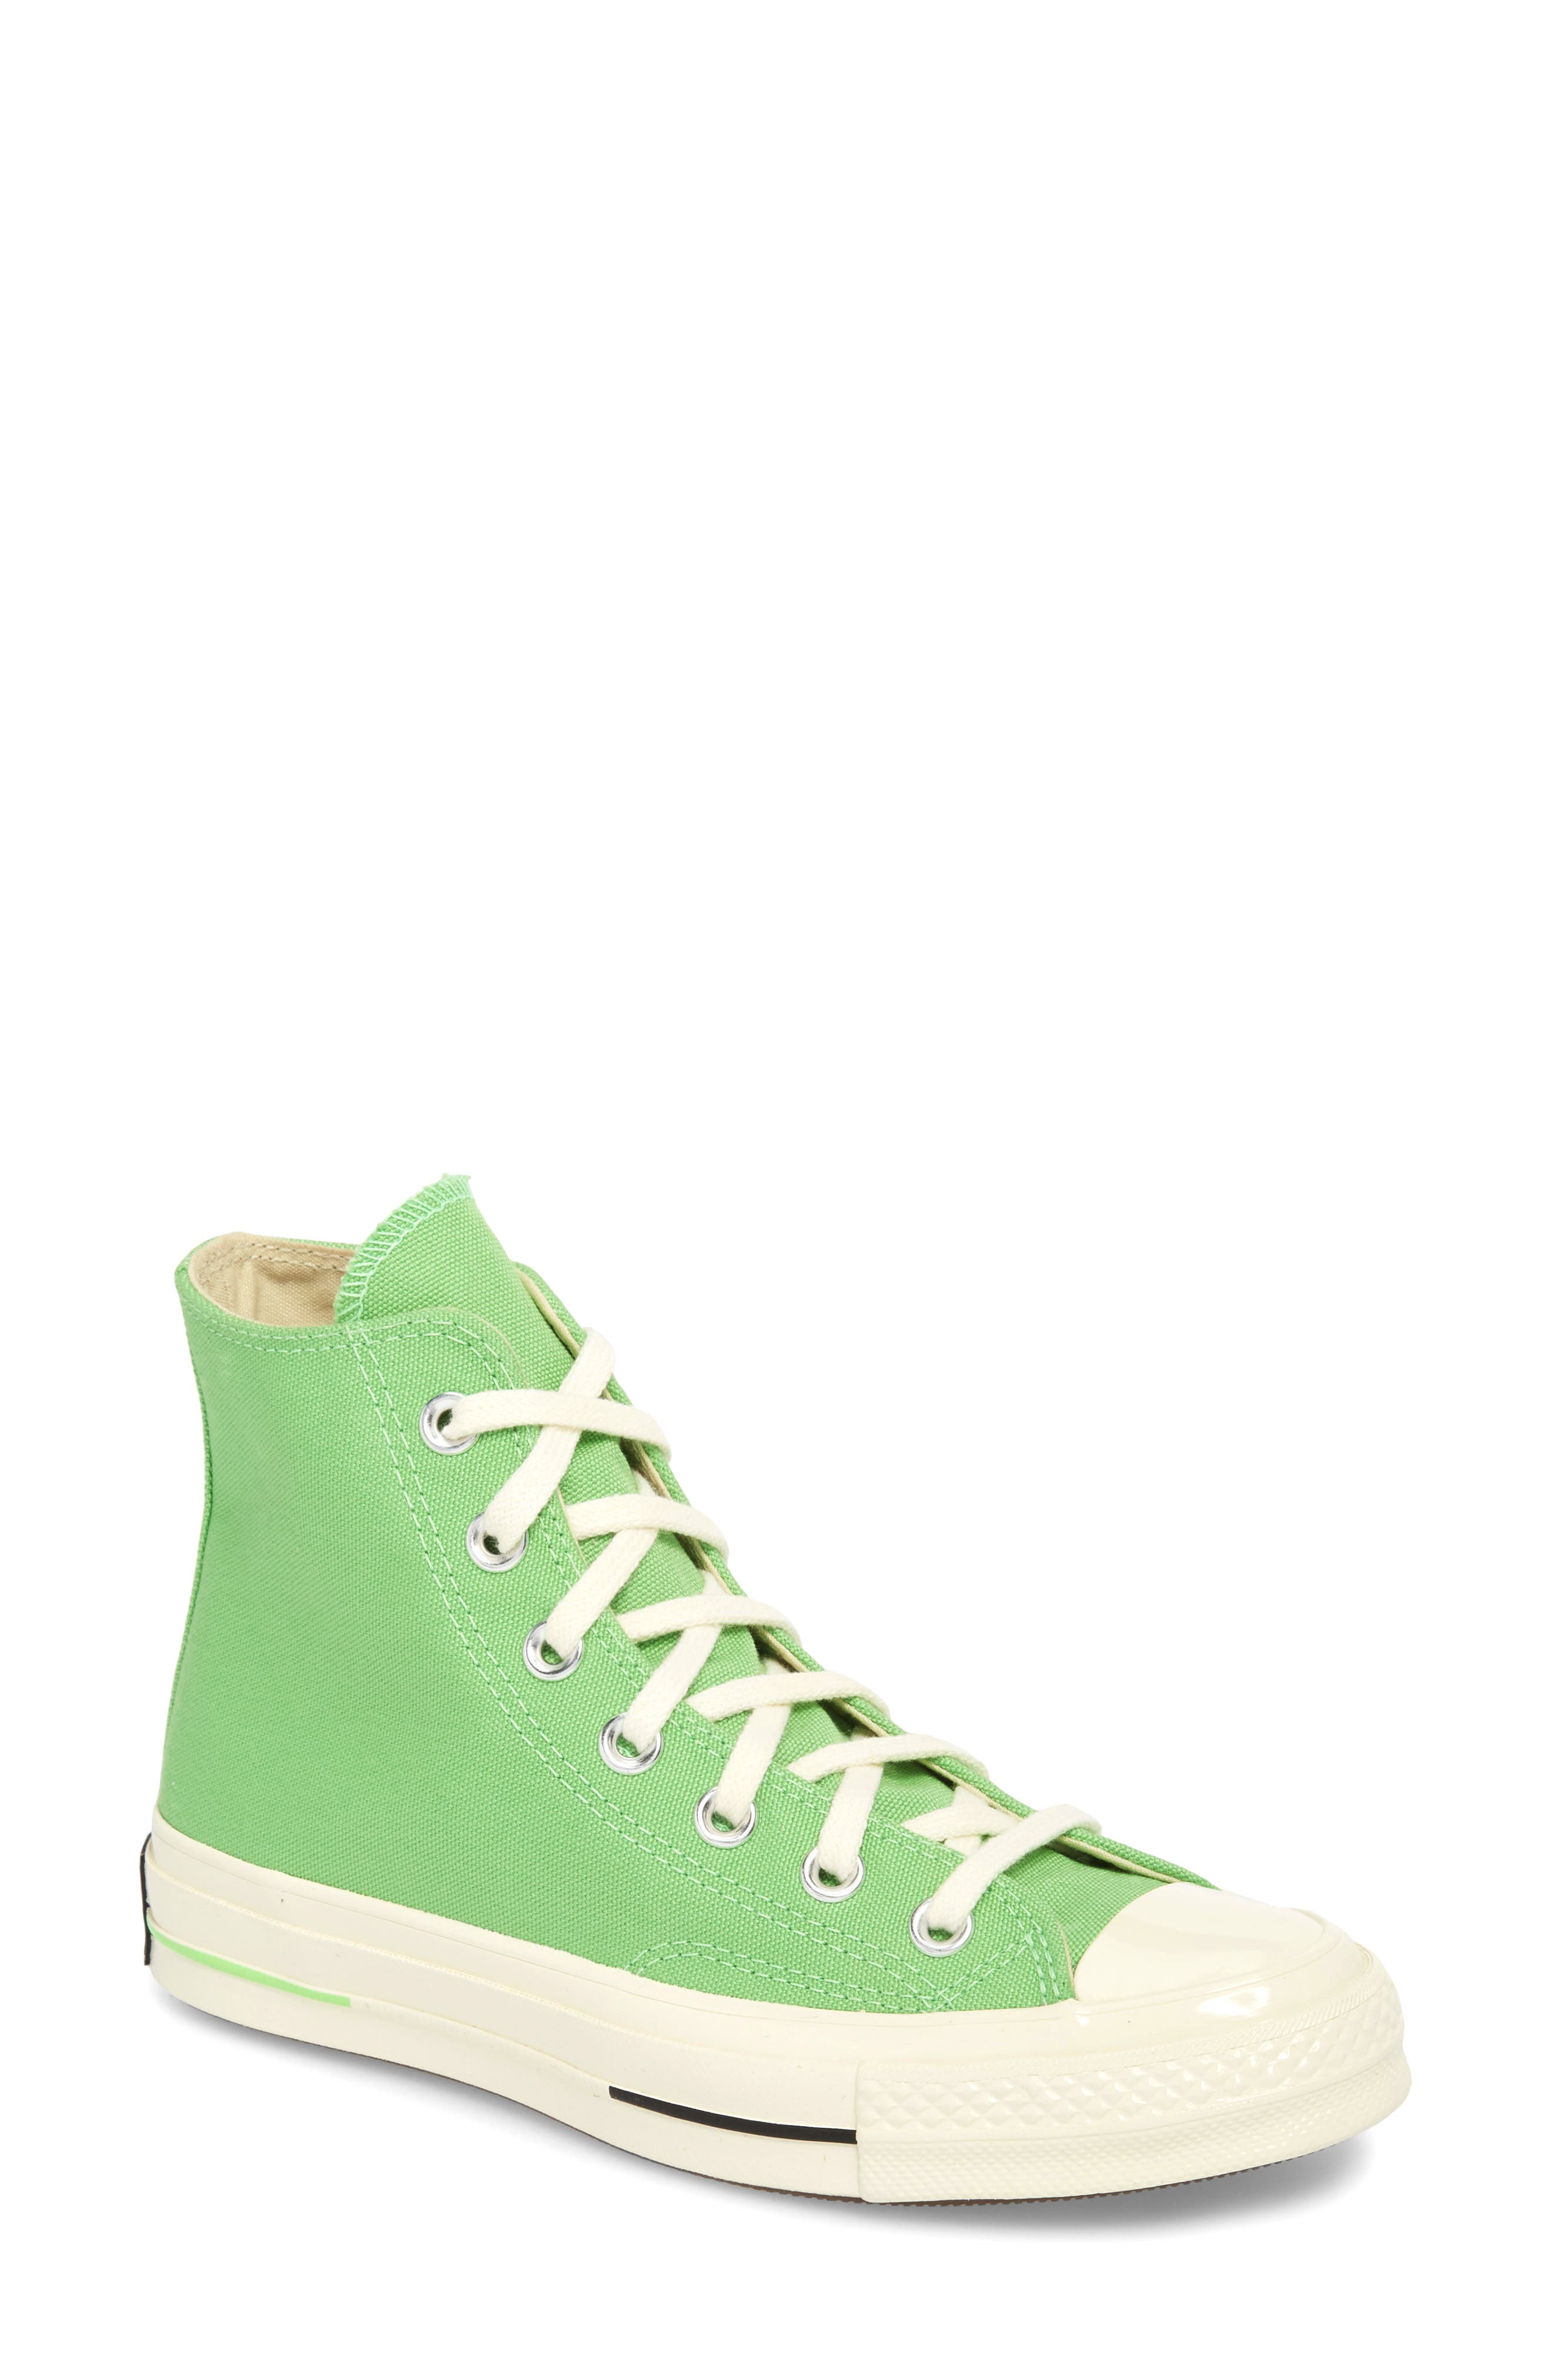 Chuck Taylor<sup>®</sup> All Star<sup>®</sup> 70 Brights High Top Sneaker,                         Main,                         color, Illusion Green